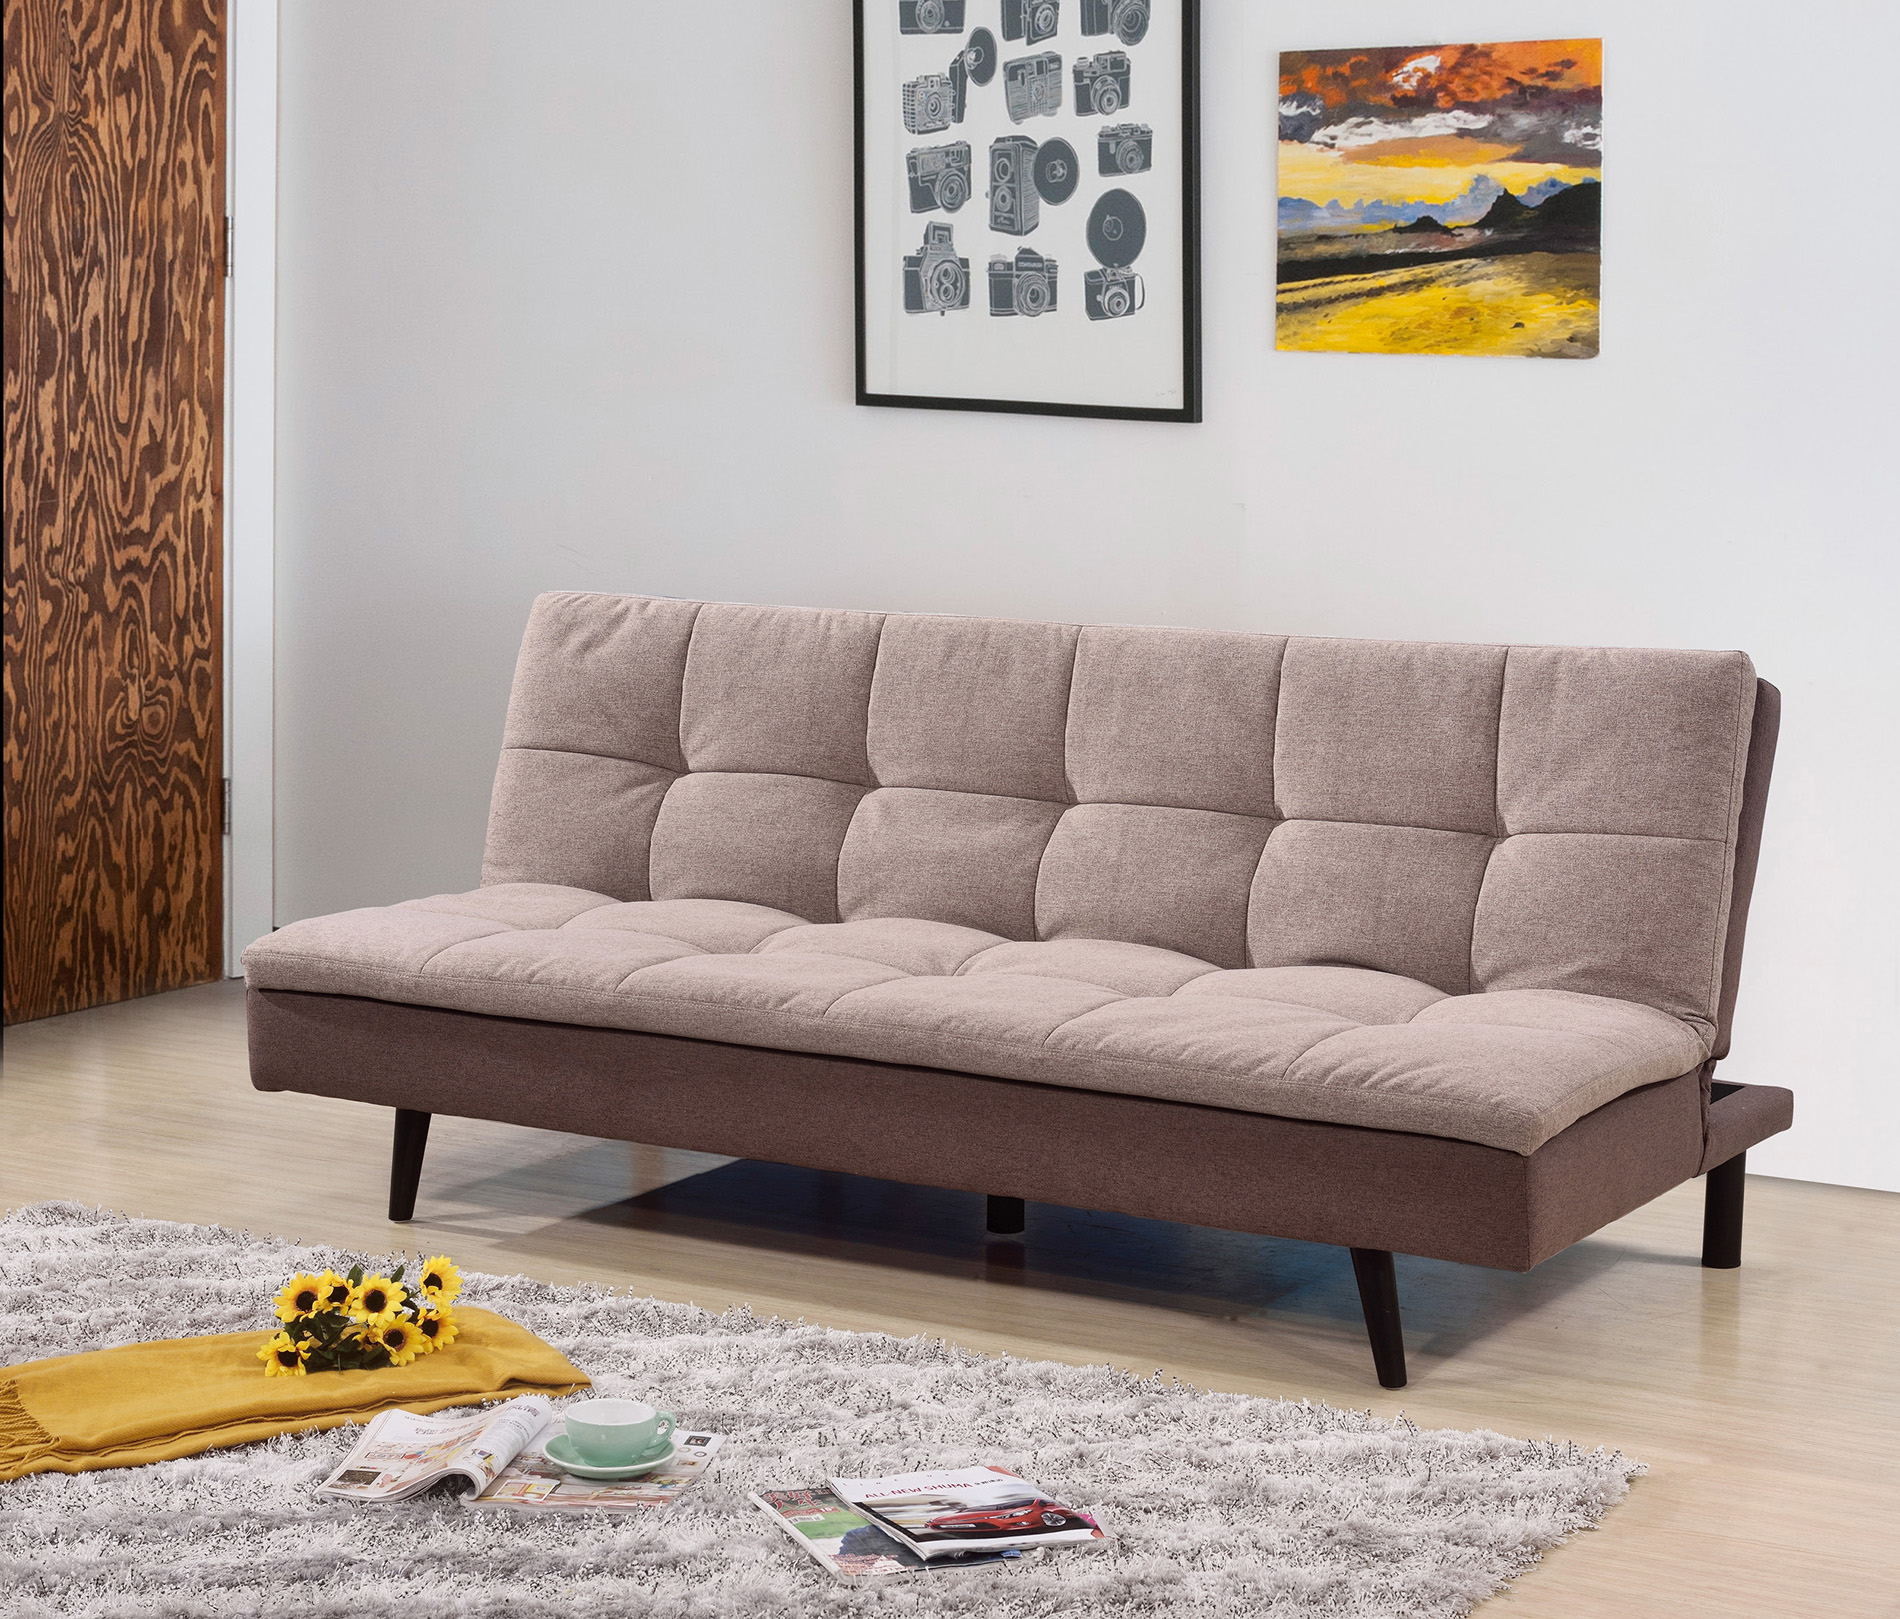 7568 light brown pillow top sofa bed 7568 lbr milton greens stars lowest price possible with best possible value